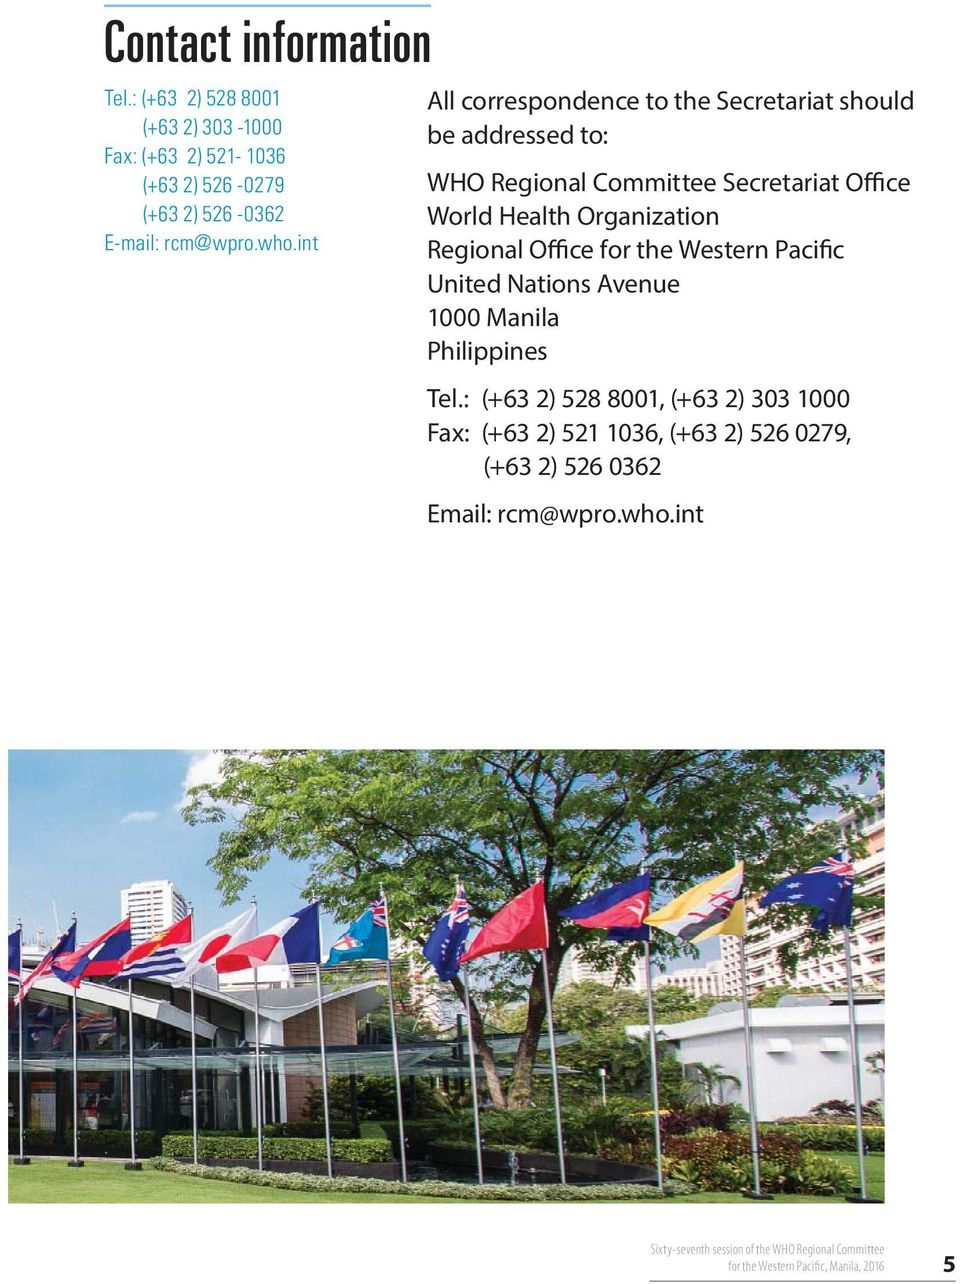 Office for the Western Pacific United Nations Avenue 1000 Manila Philippines Tel.